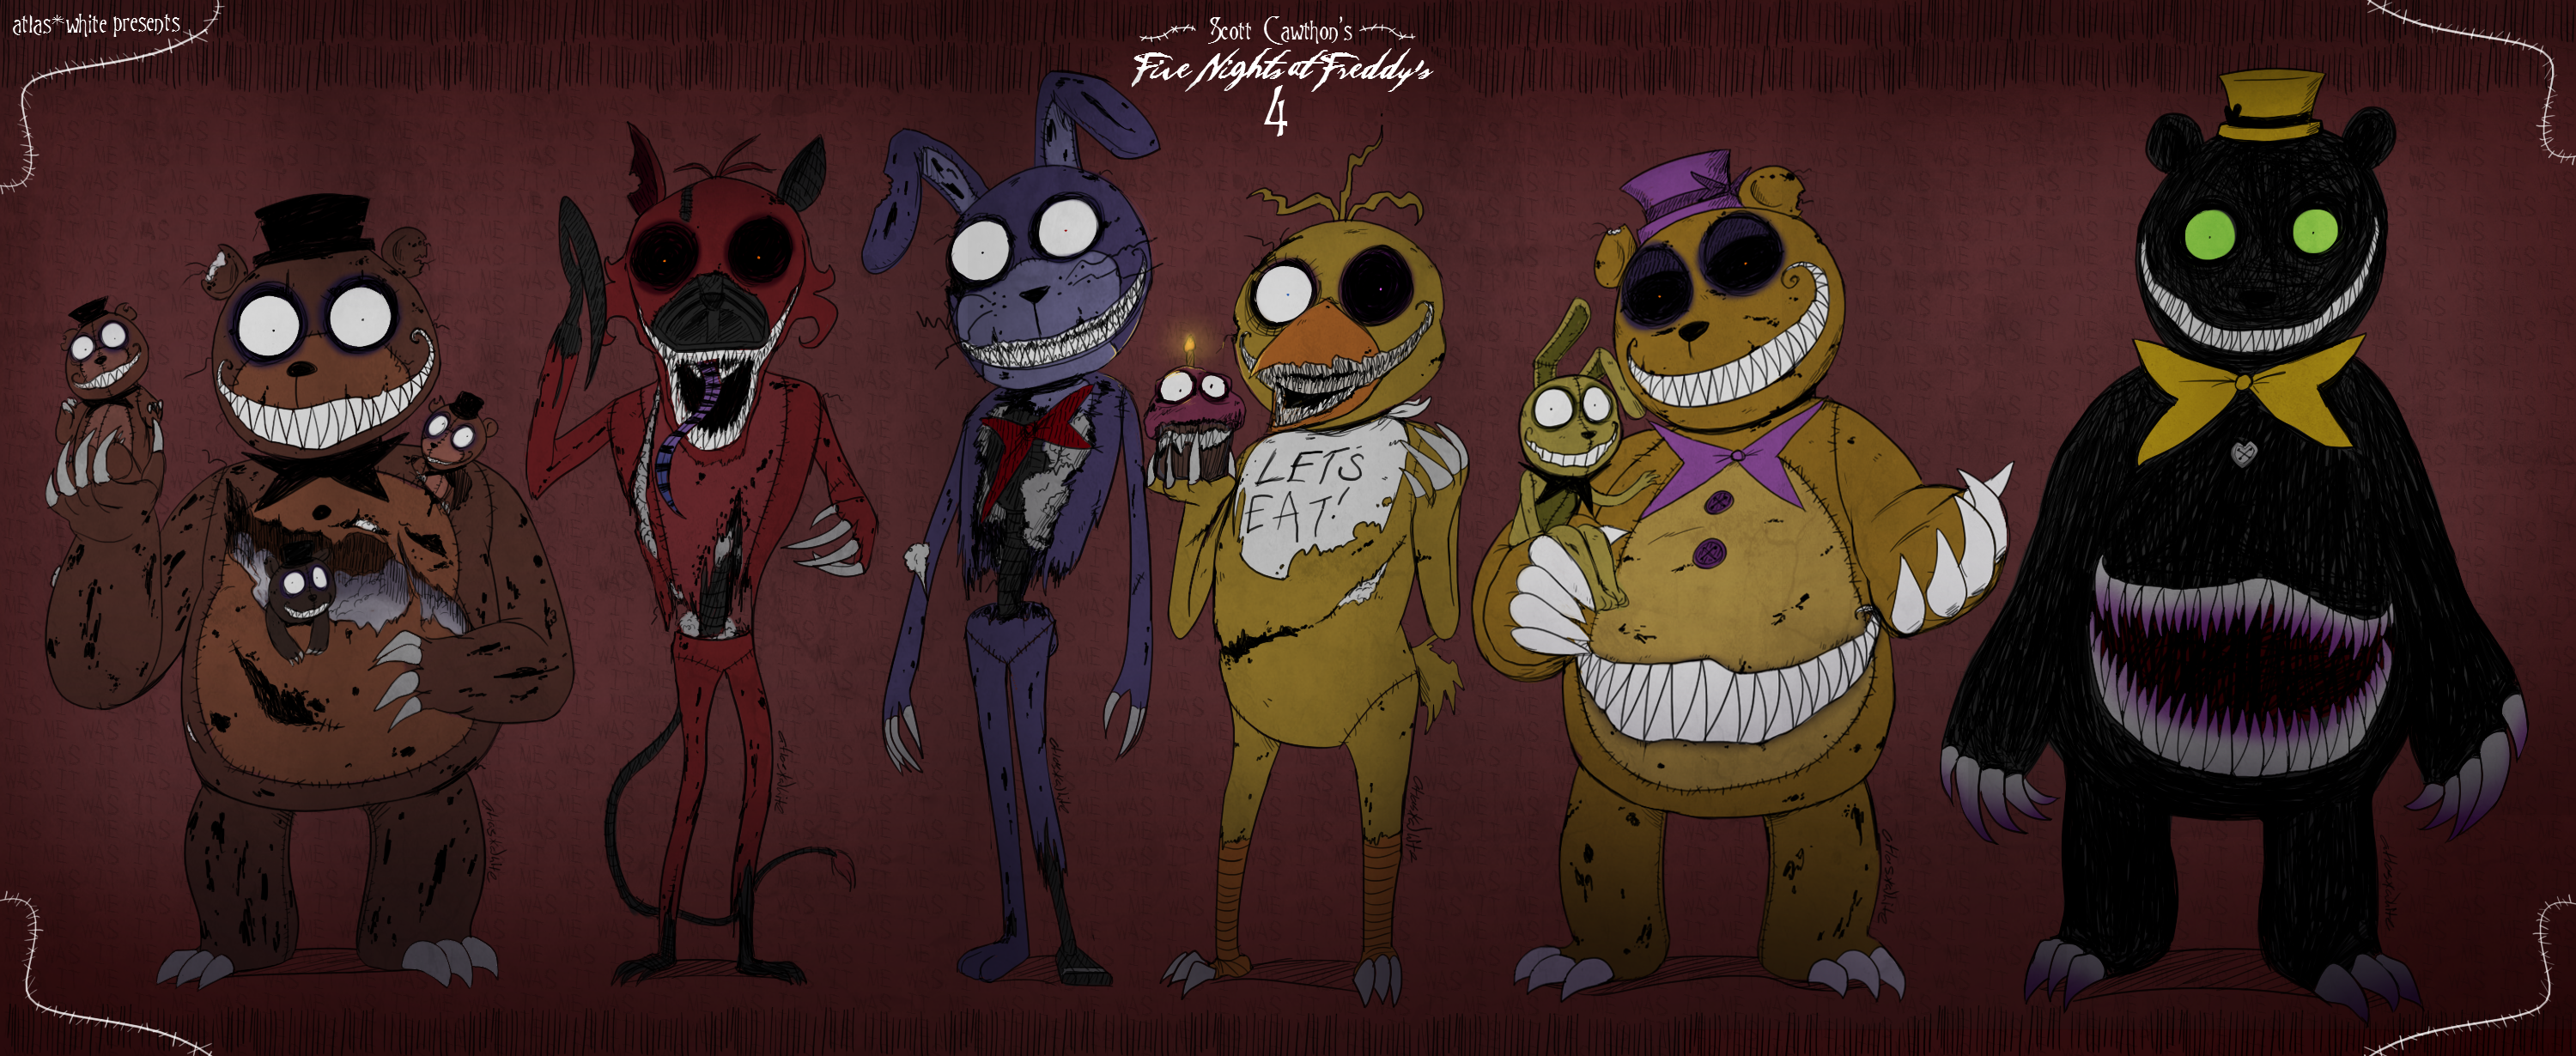 Five nights at freddy s 4 by atlas white on deviantart